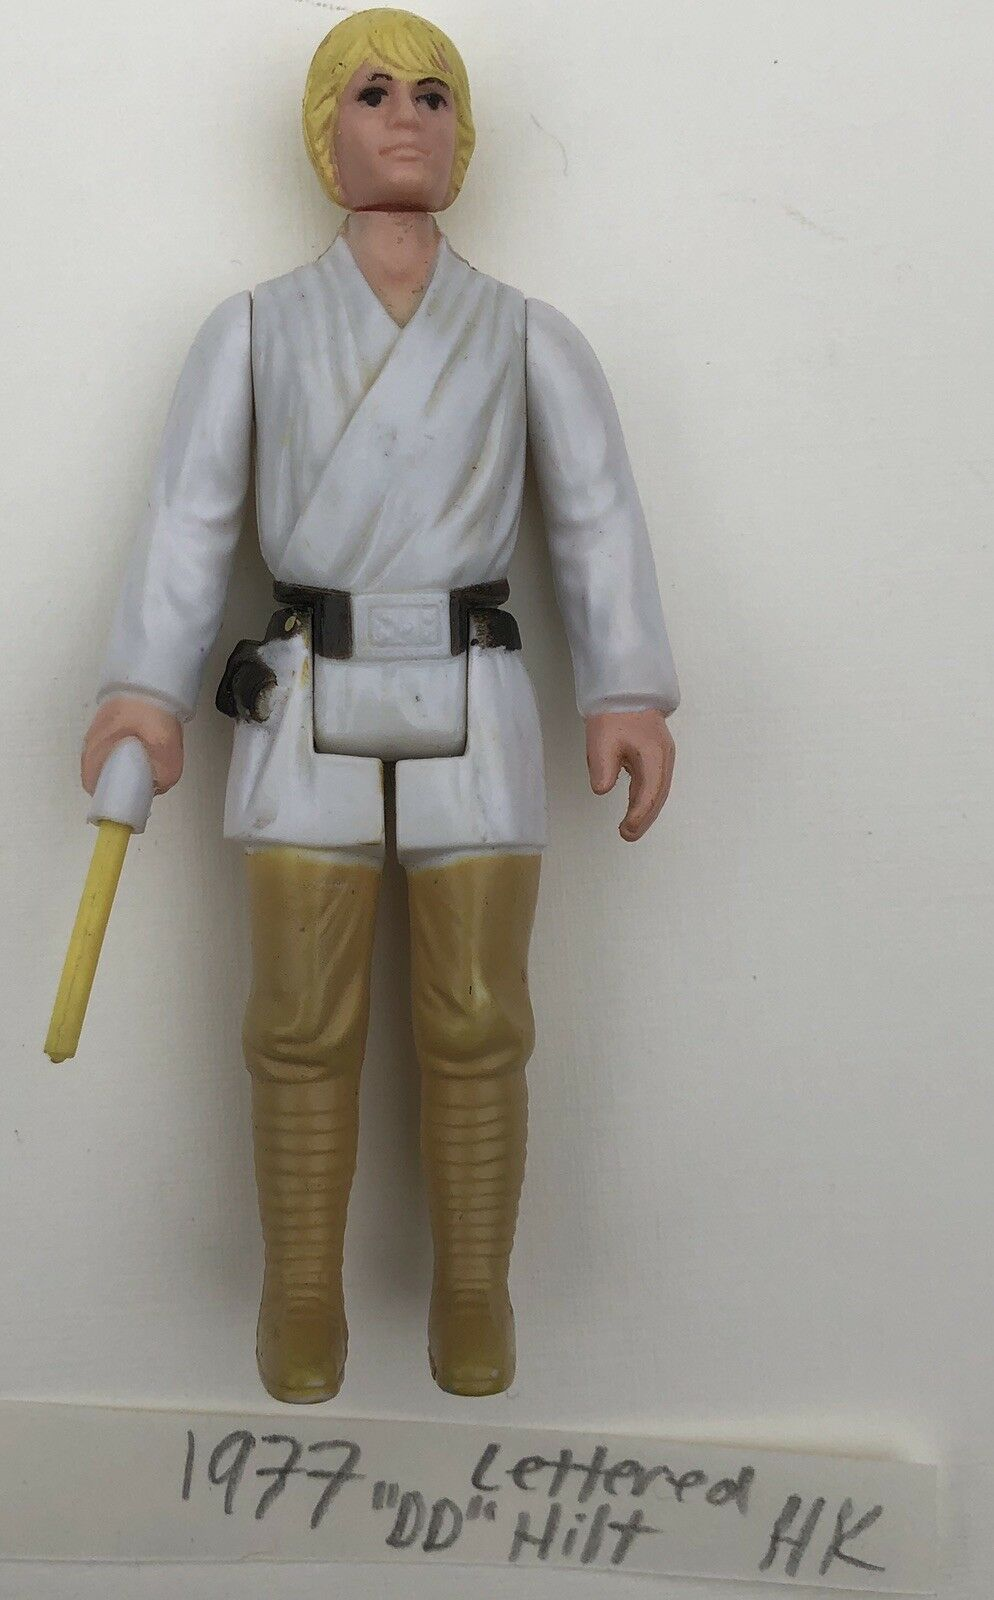 1977 Vintage Star Wars Luke Farmboy Action Figure Lettered Hilt Lightsaber Real